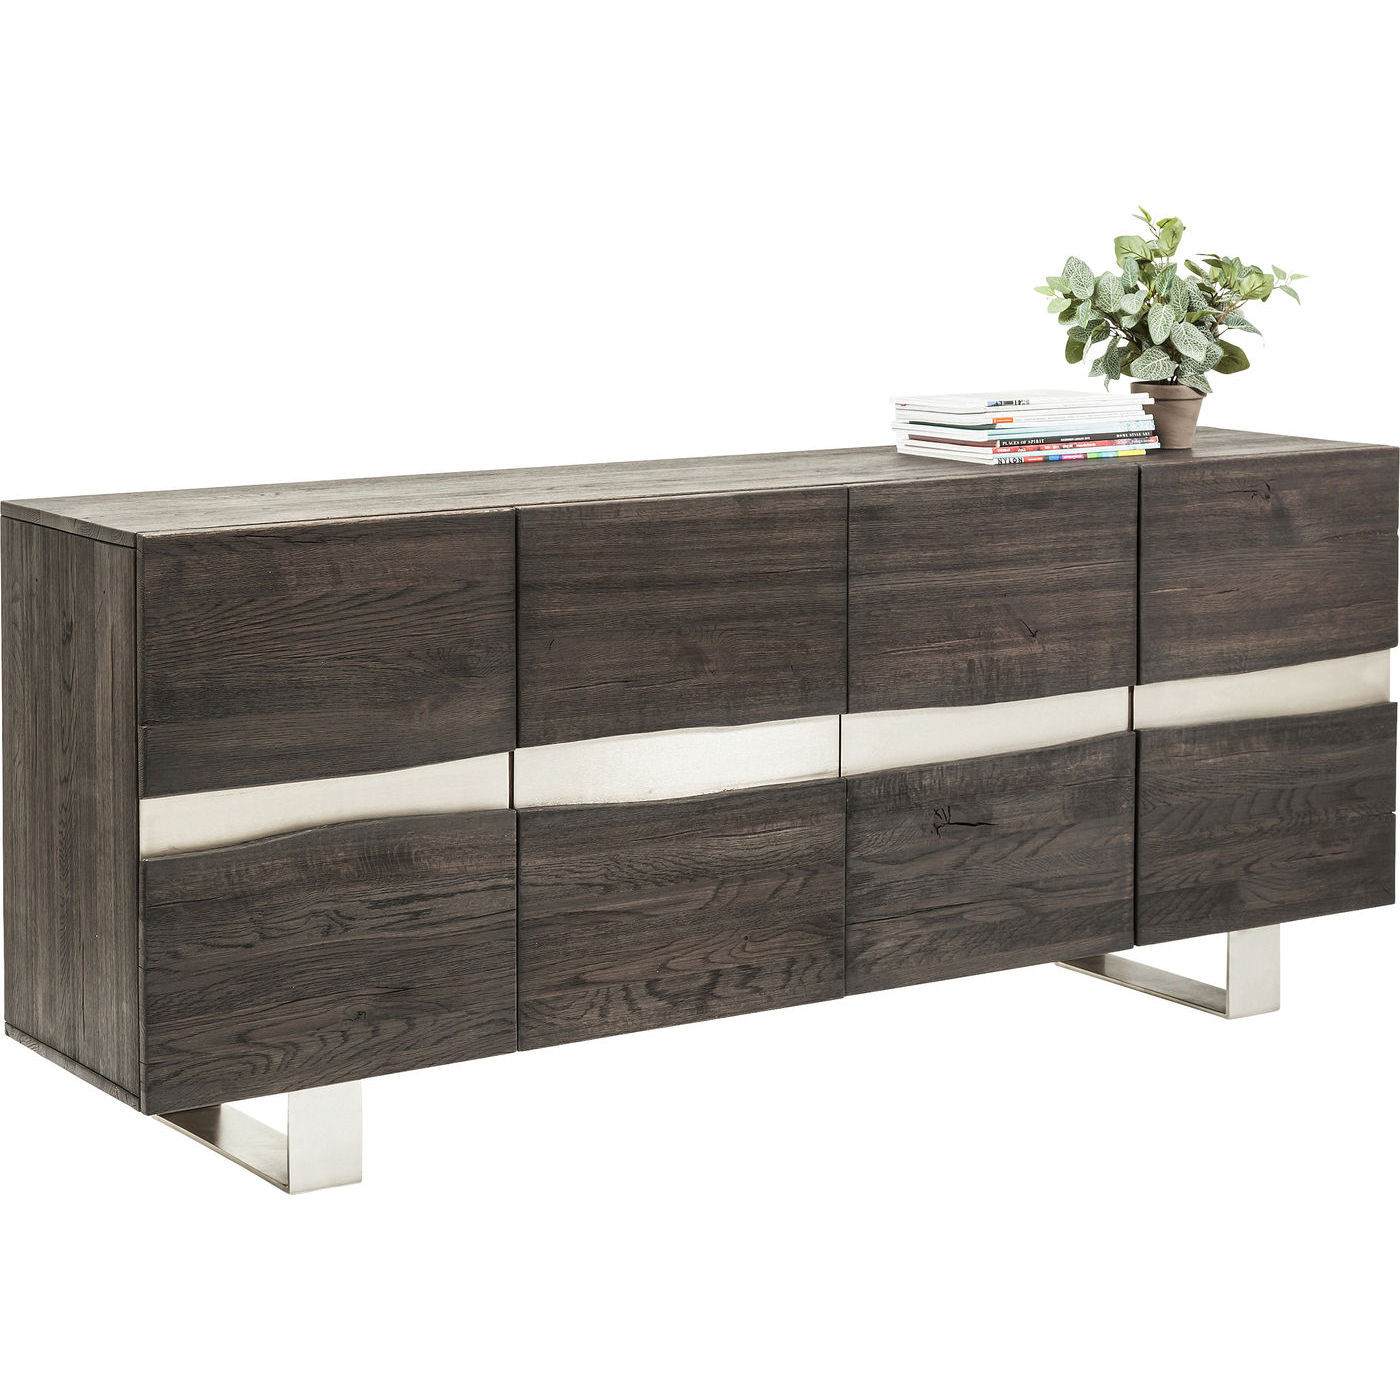 Wohnzimmer Sideboard Sideboard Wave Sideboards Kommoden And Sideboards